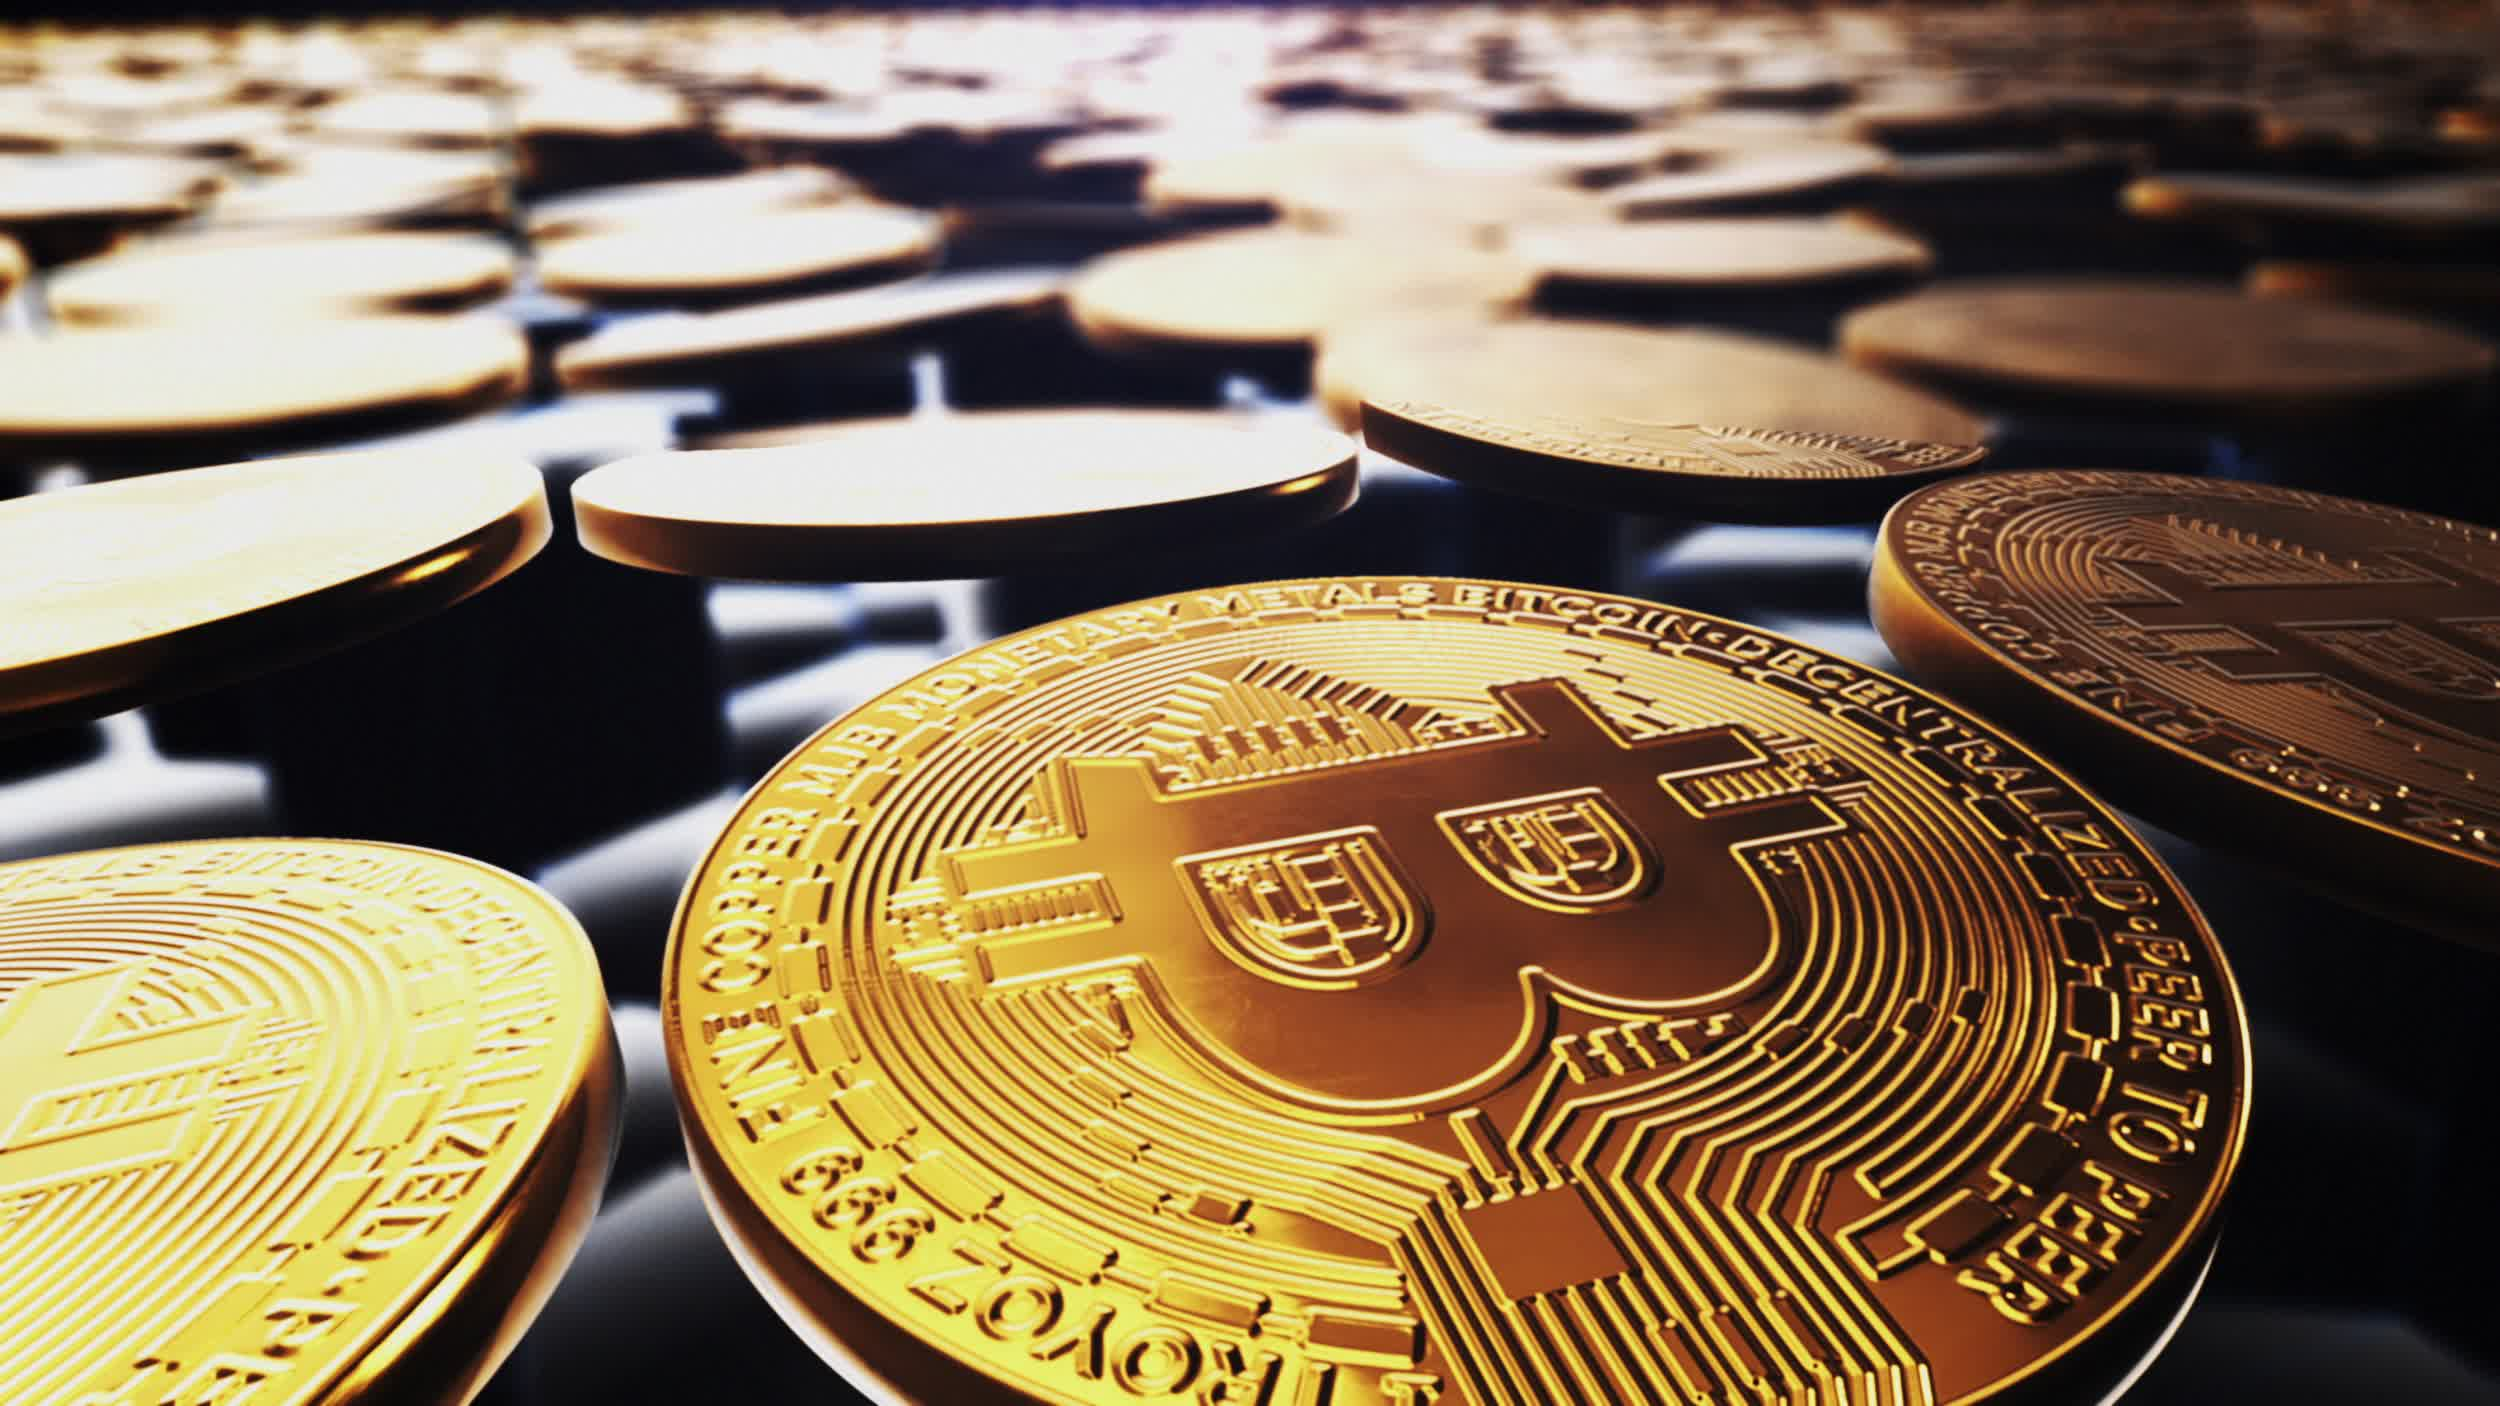 El Salvador bought the dip, added 150 Bitcoins to its holdings